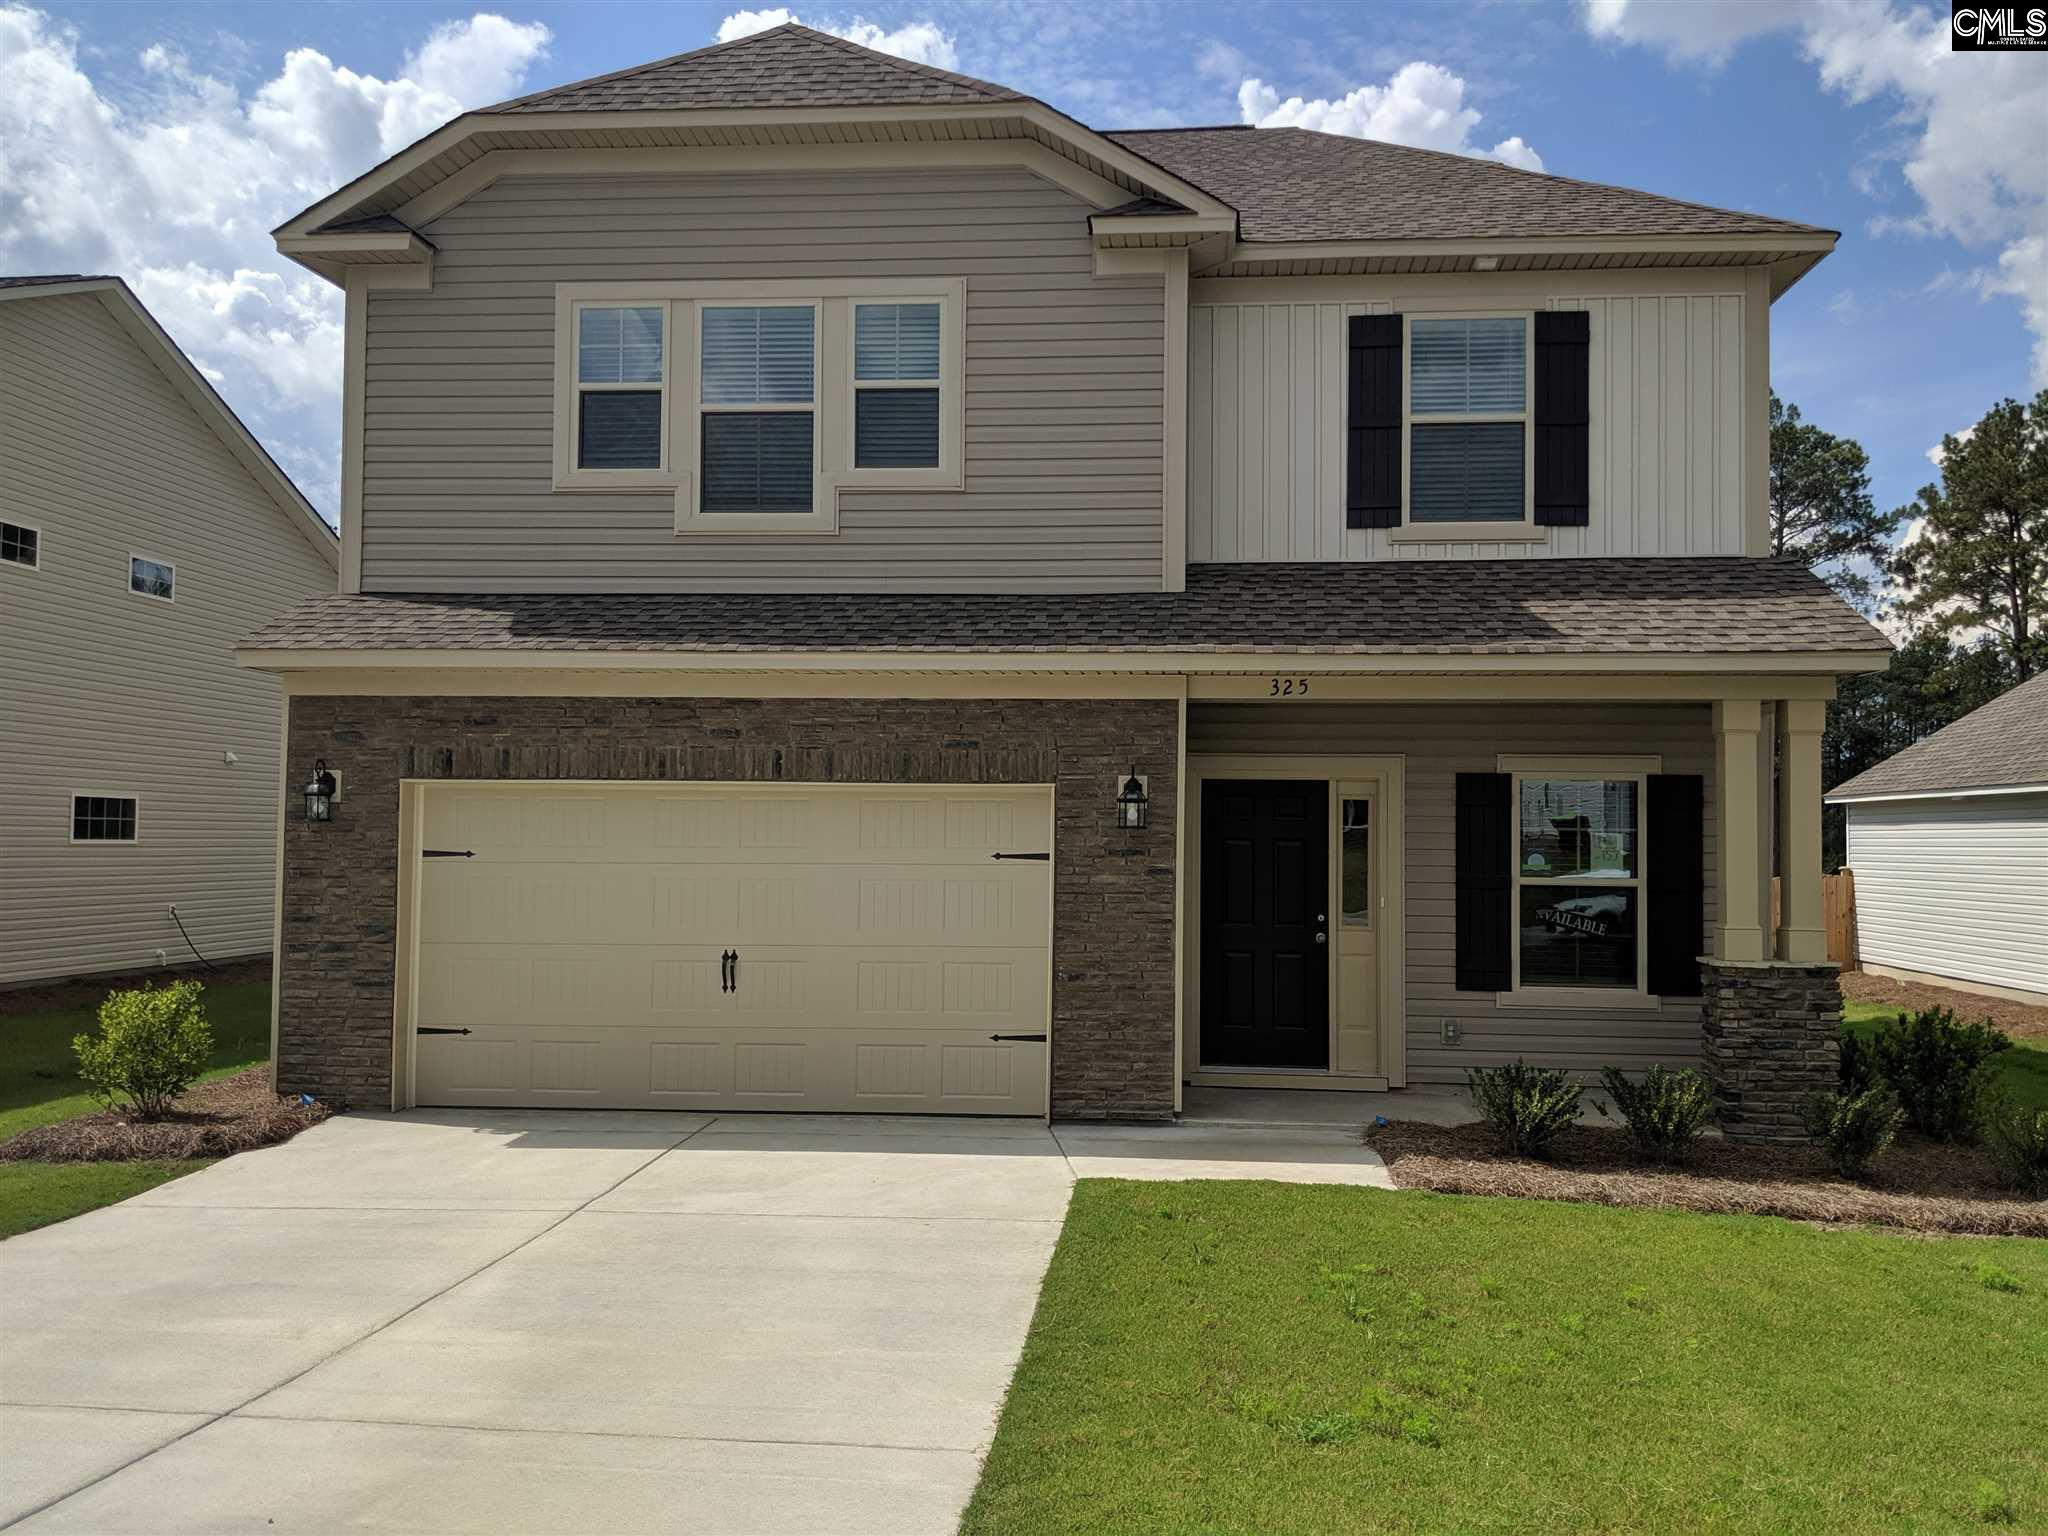 643 Cheehaw West Columbia, SC 29170